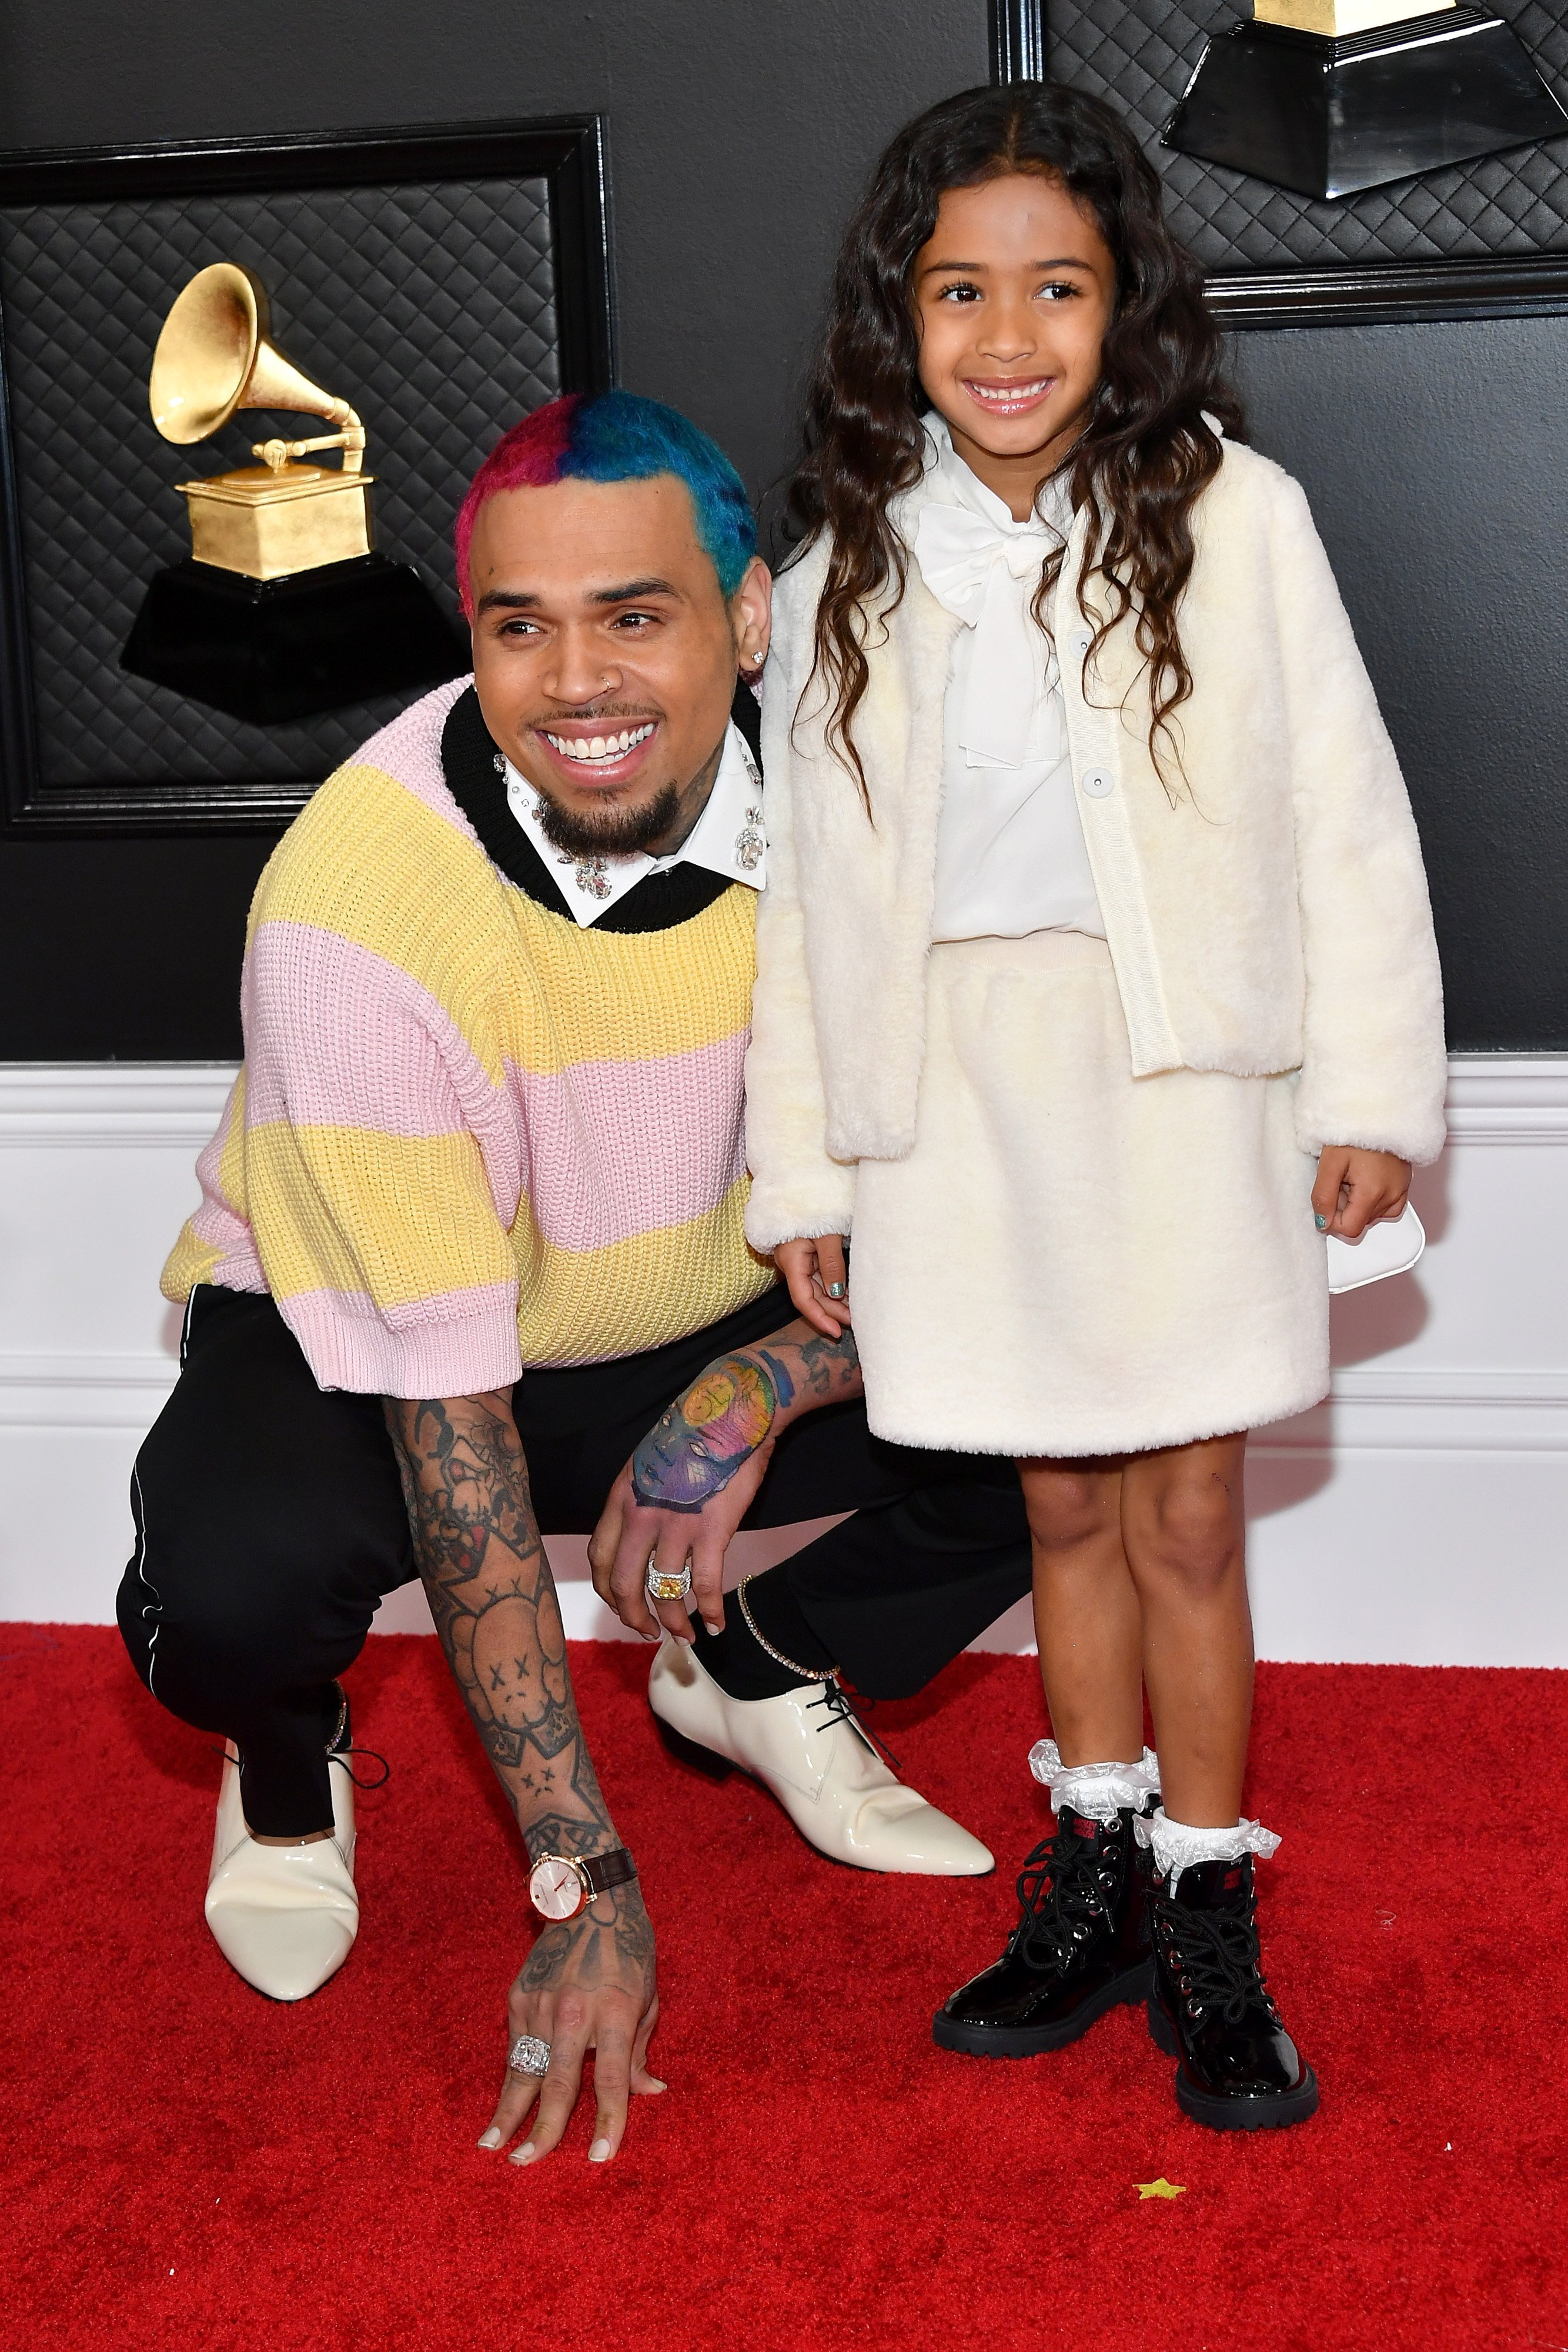 Chris Brown and his daughter, Royalty at the red carpet of the Grammy Awards in January 2020. | Photo: Getty Image